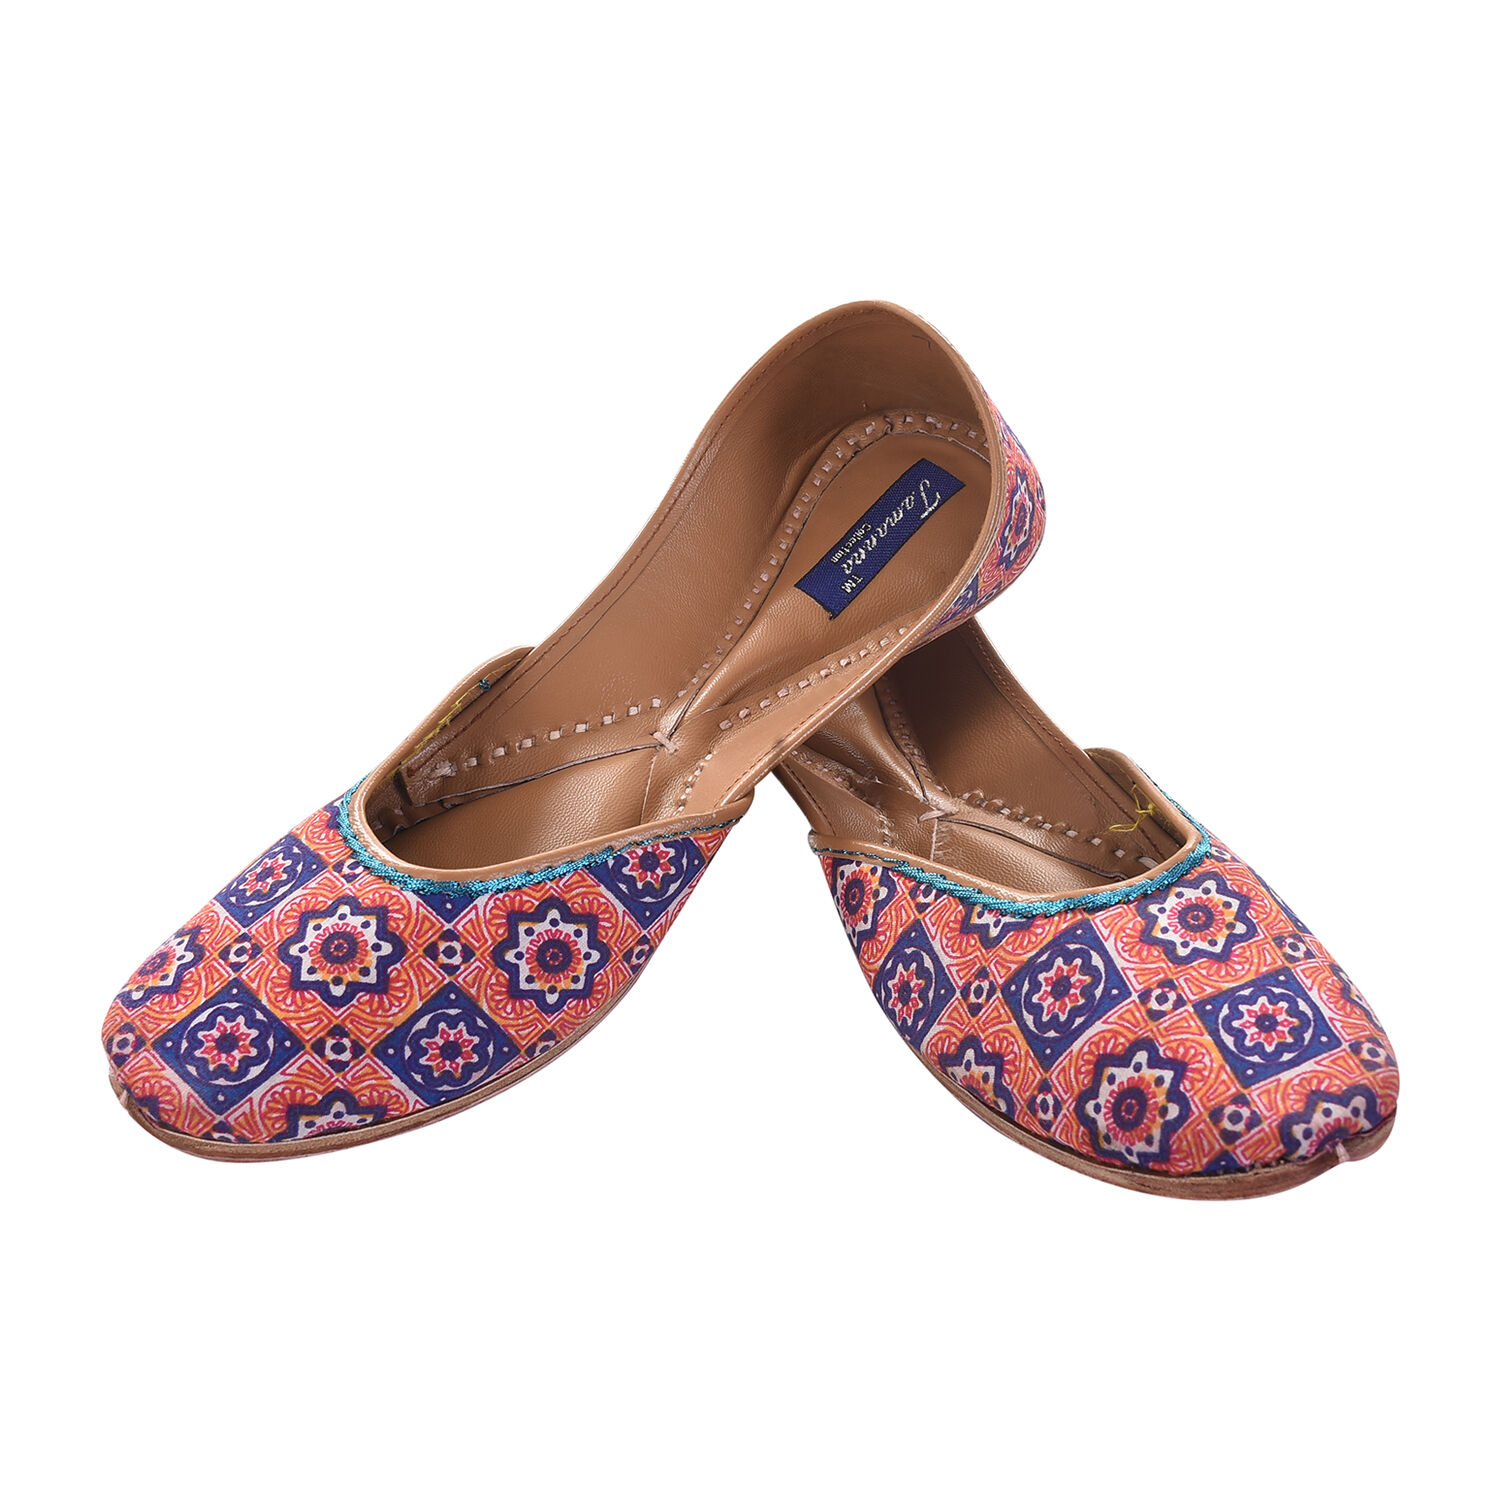 Indian Handcrafted Women Rajsthani Leather Mojari In Mutli Color For Women Handcrafted US Size 7 7f6619